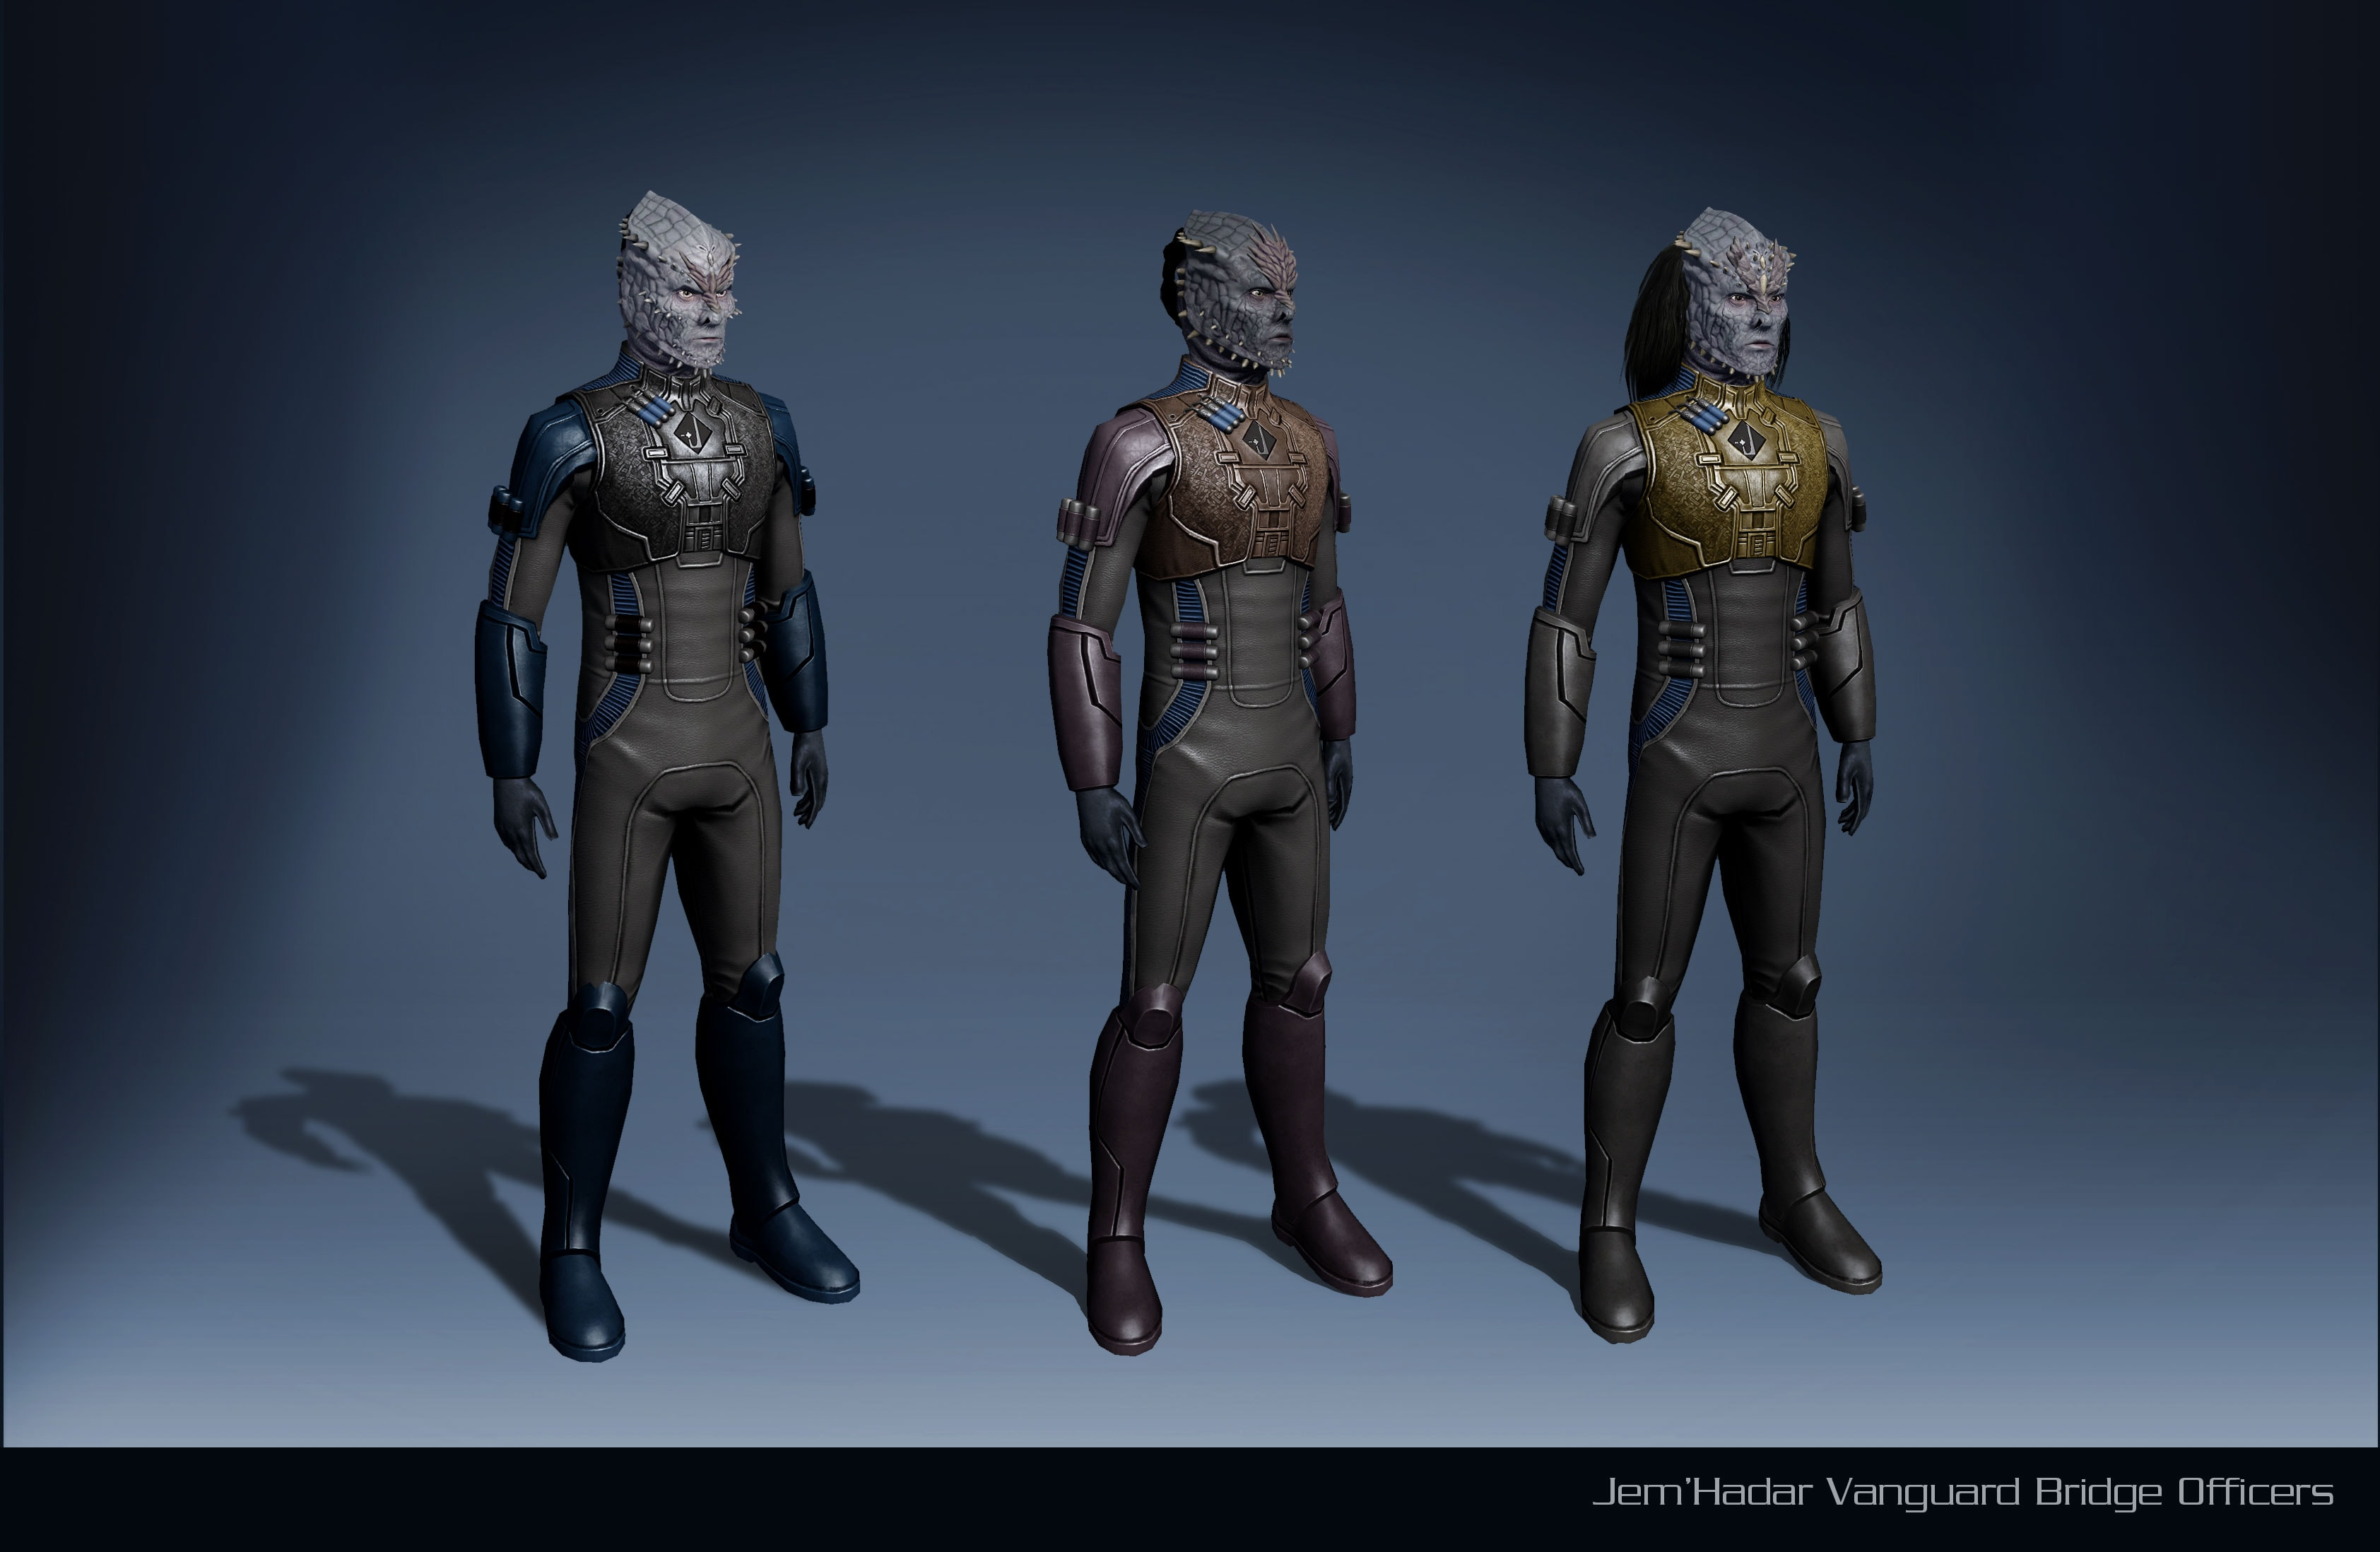 Jem'Hadar Vanguard and Cardassian Intelligence Starship Stats & Abilities 32a60dea8cb4284cb126885f1c0c2fed1526680030